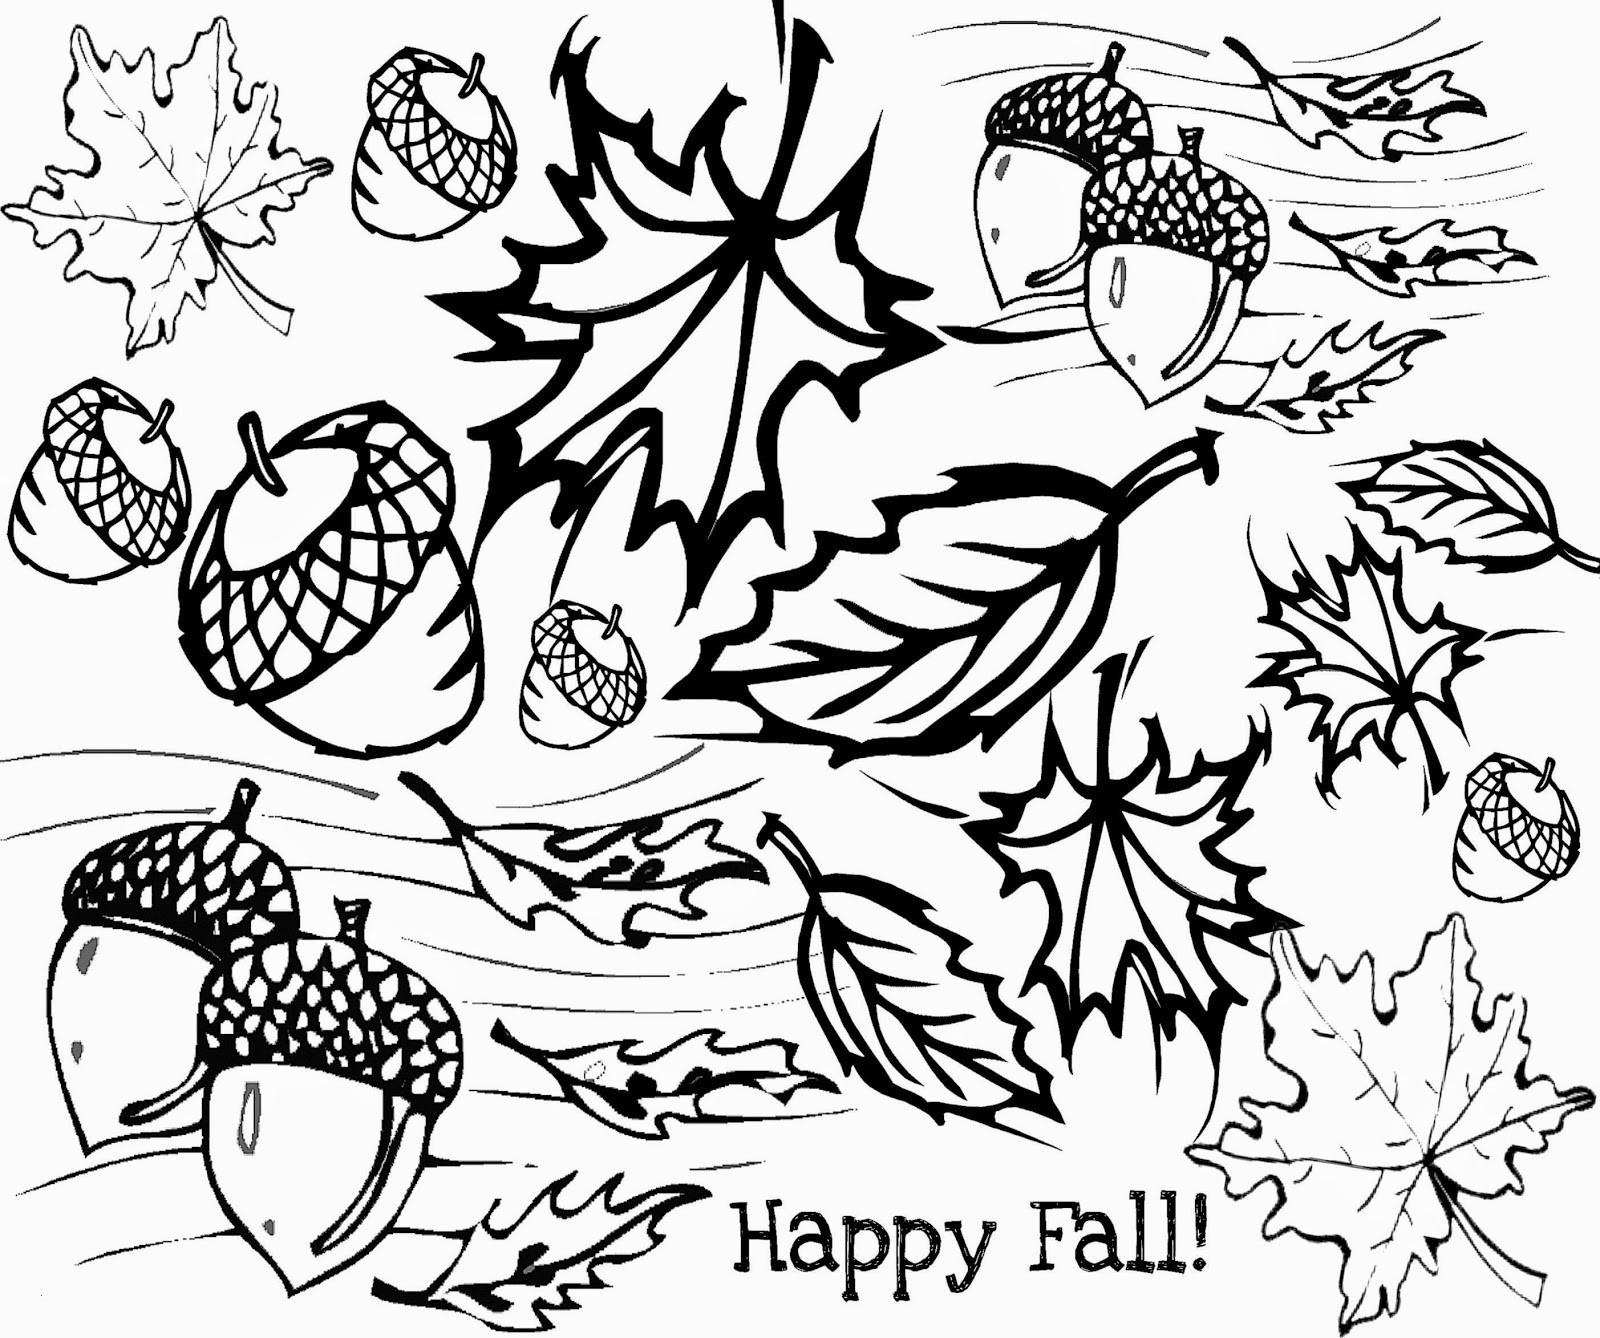 harvest coloring pictures harvest coloring pages best coloring pages for kids harvest pictures coloring